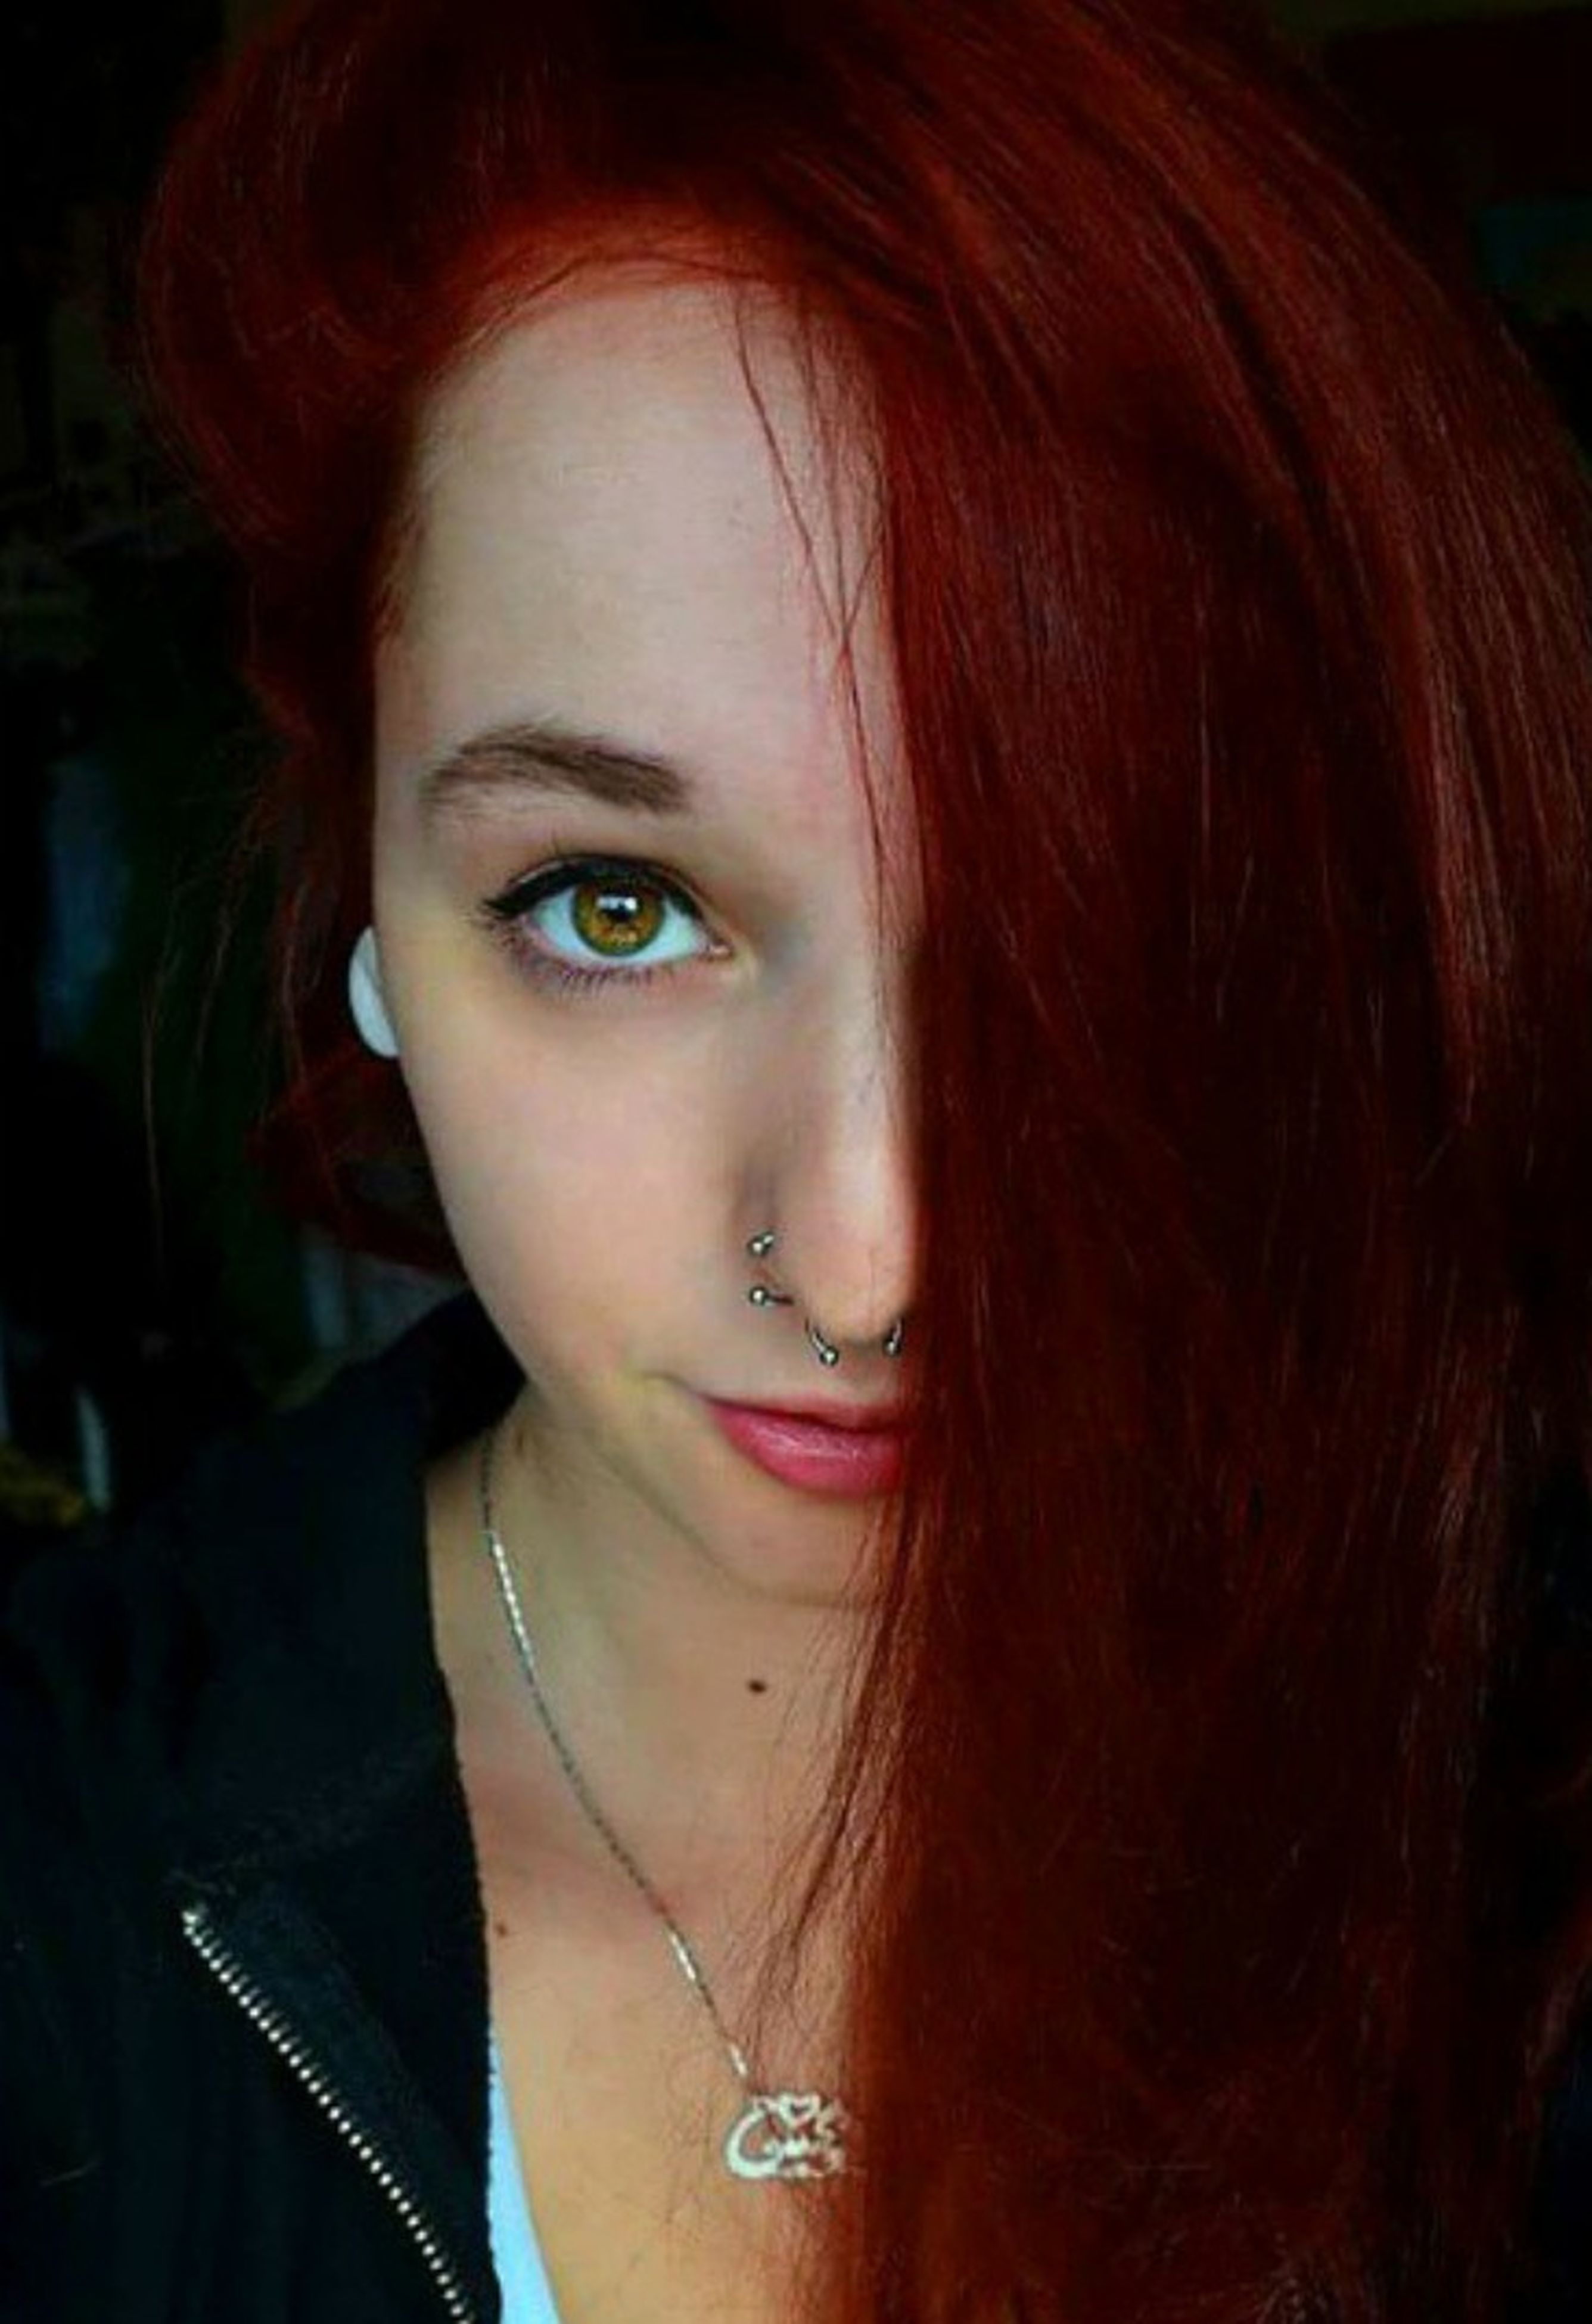 young adult, person, headshot, close-up, long hair, lifestyles, young women, looking at camera, red, human eye, green color